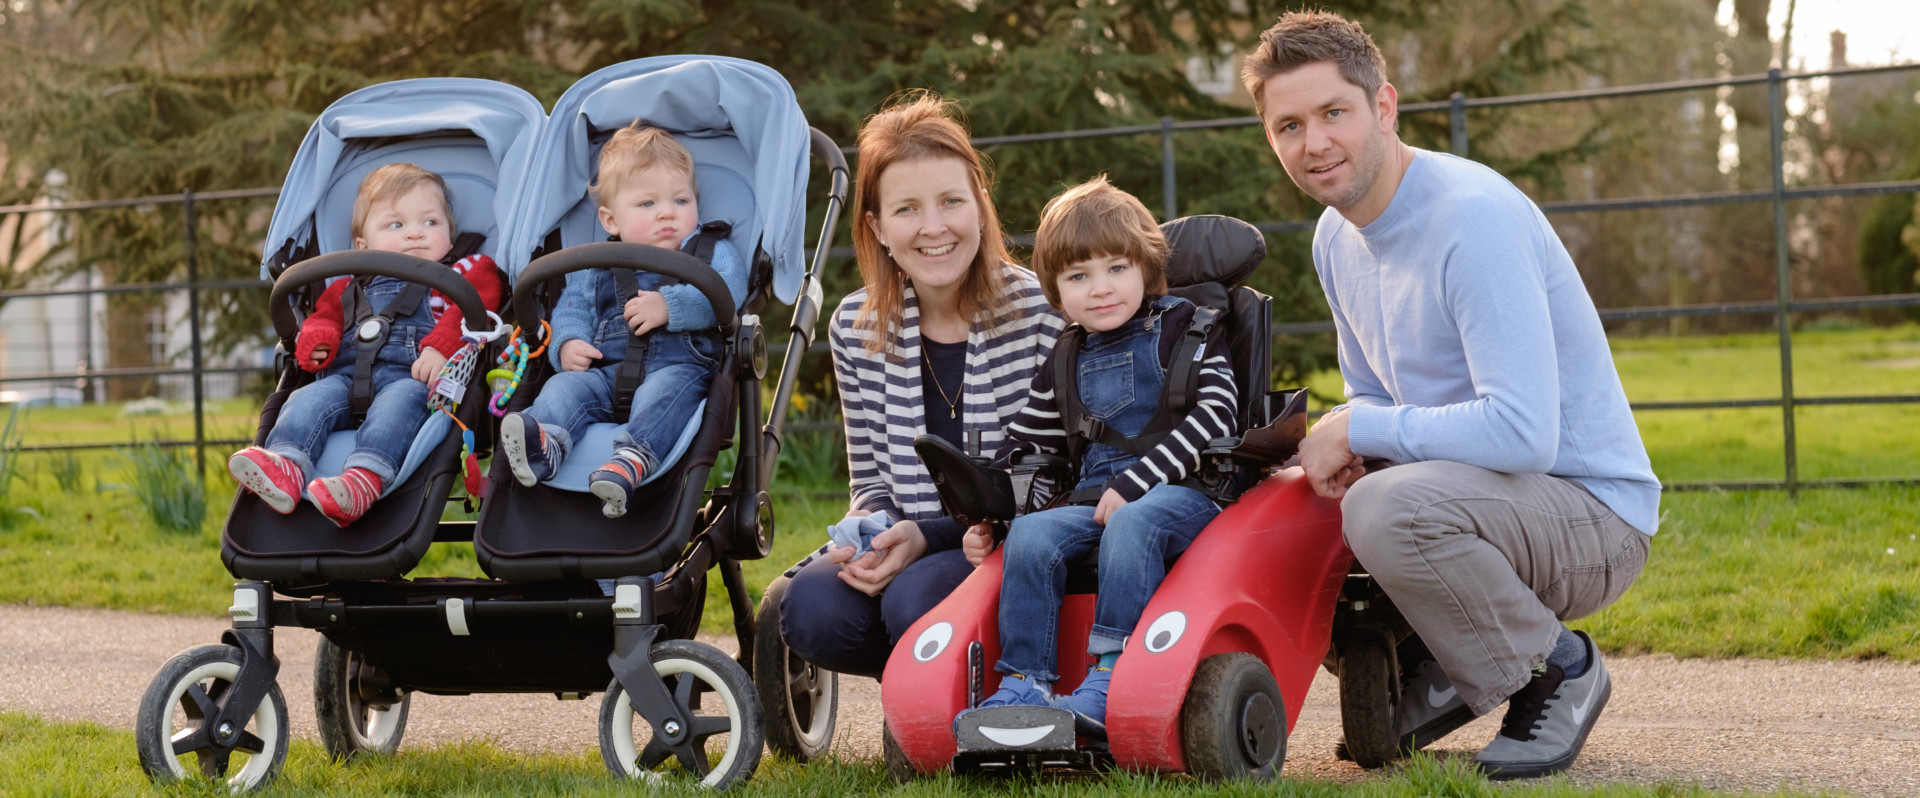 A family in the park with a Wizzybug